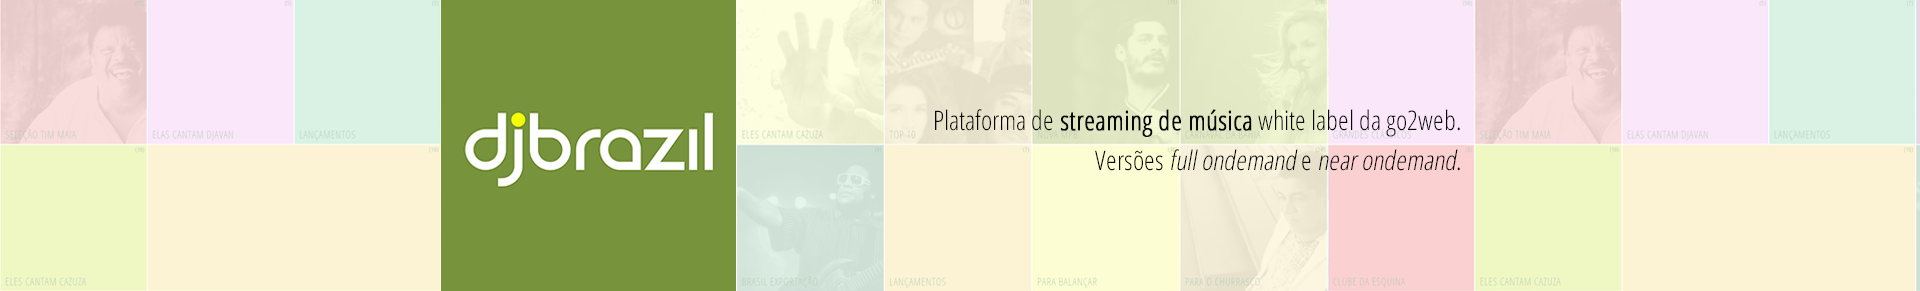 Painel DJ Brazil. Plataforma de streaming de música white label da go2web.